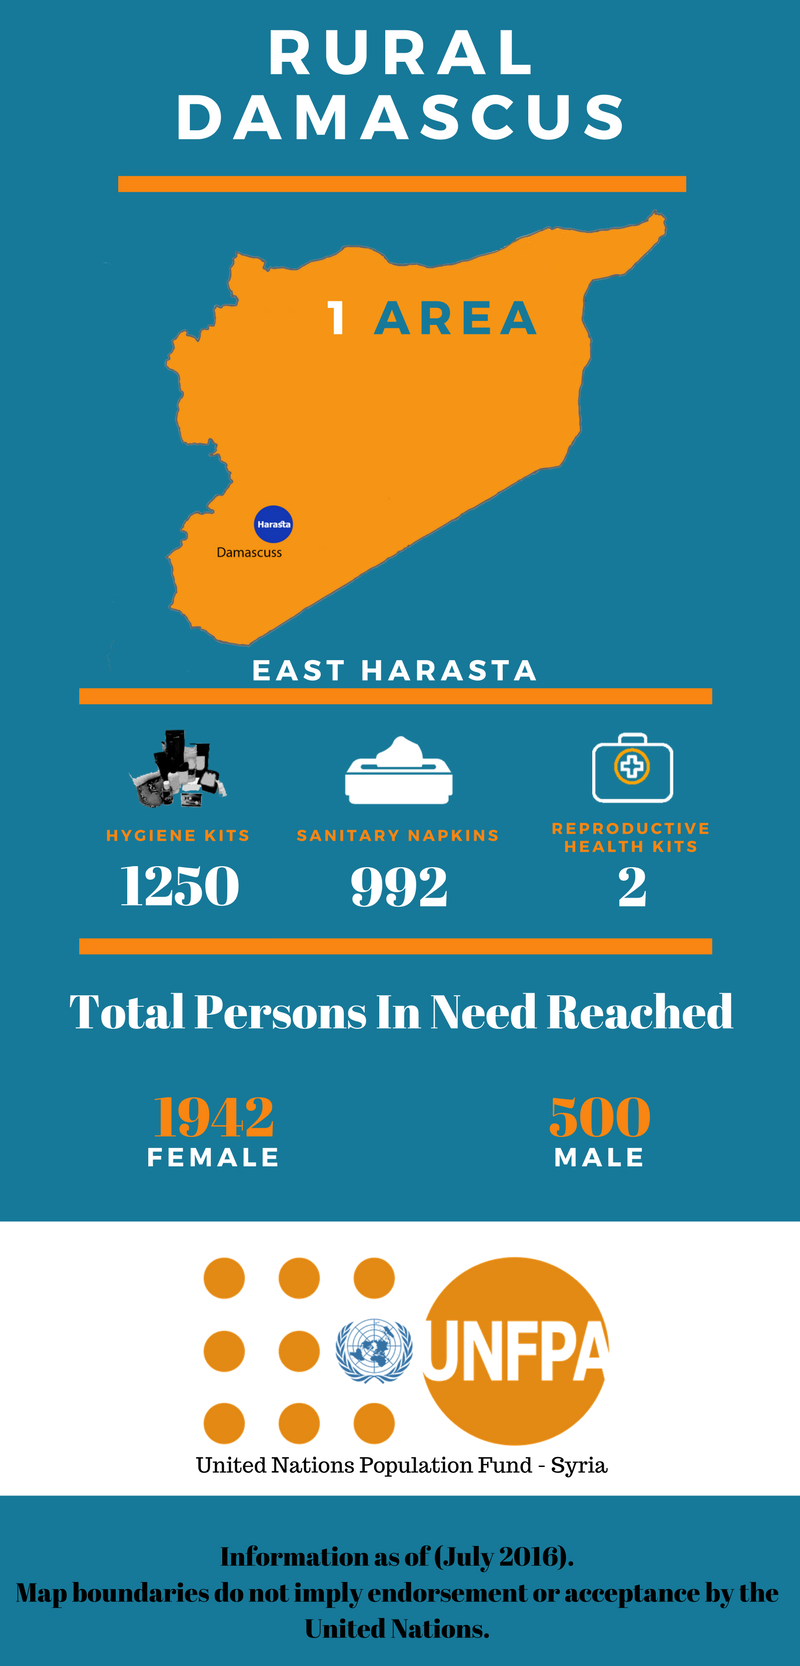 UNFPA support in Damascus and Homs, Syria, in July 2016